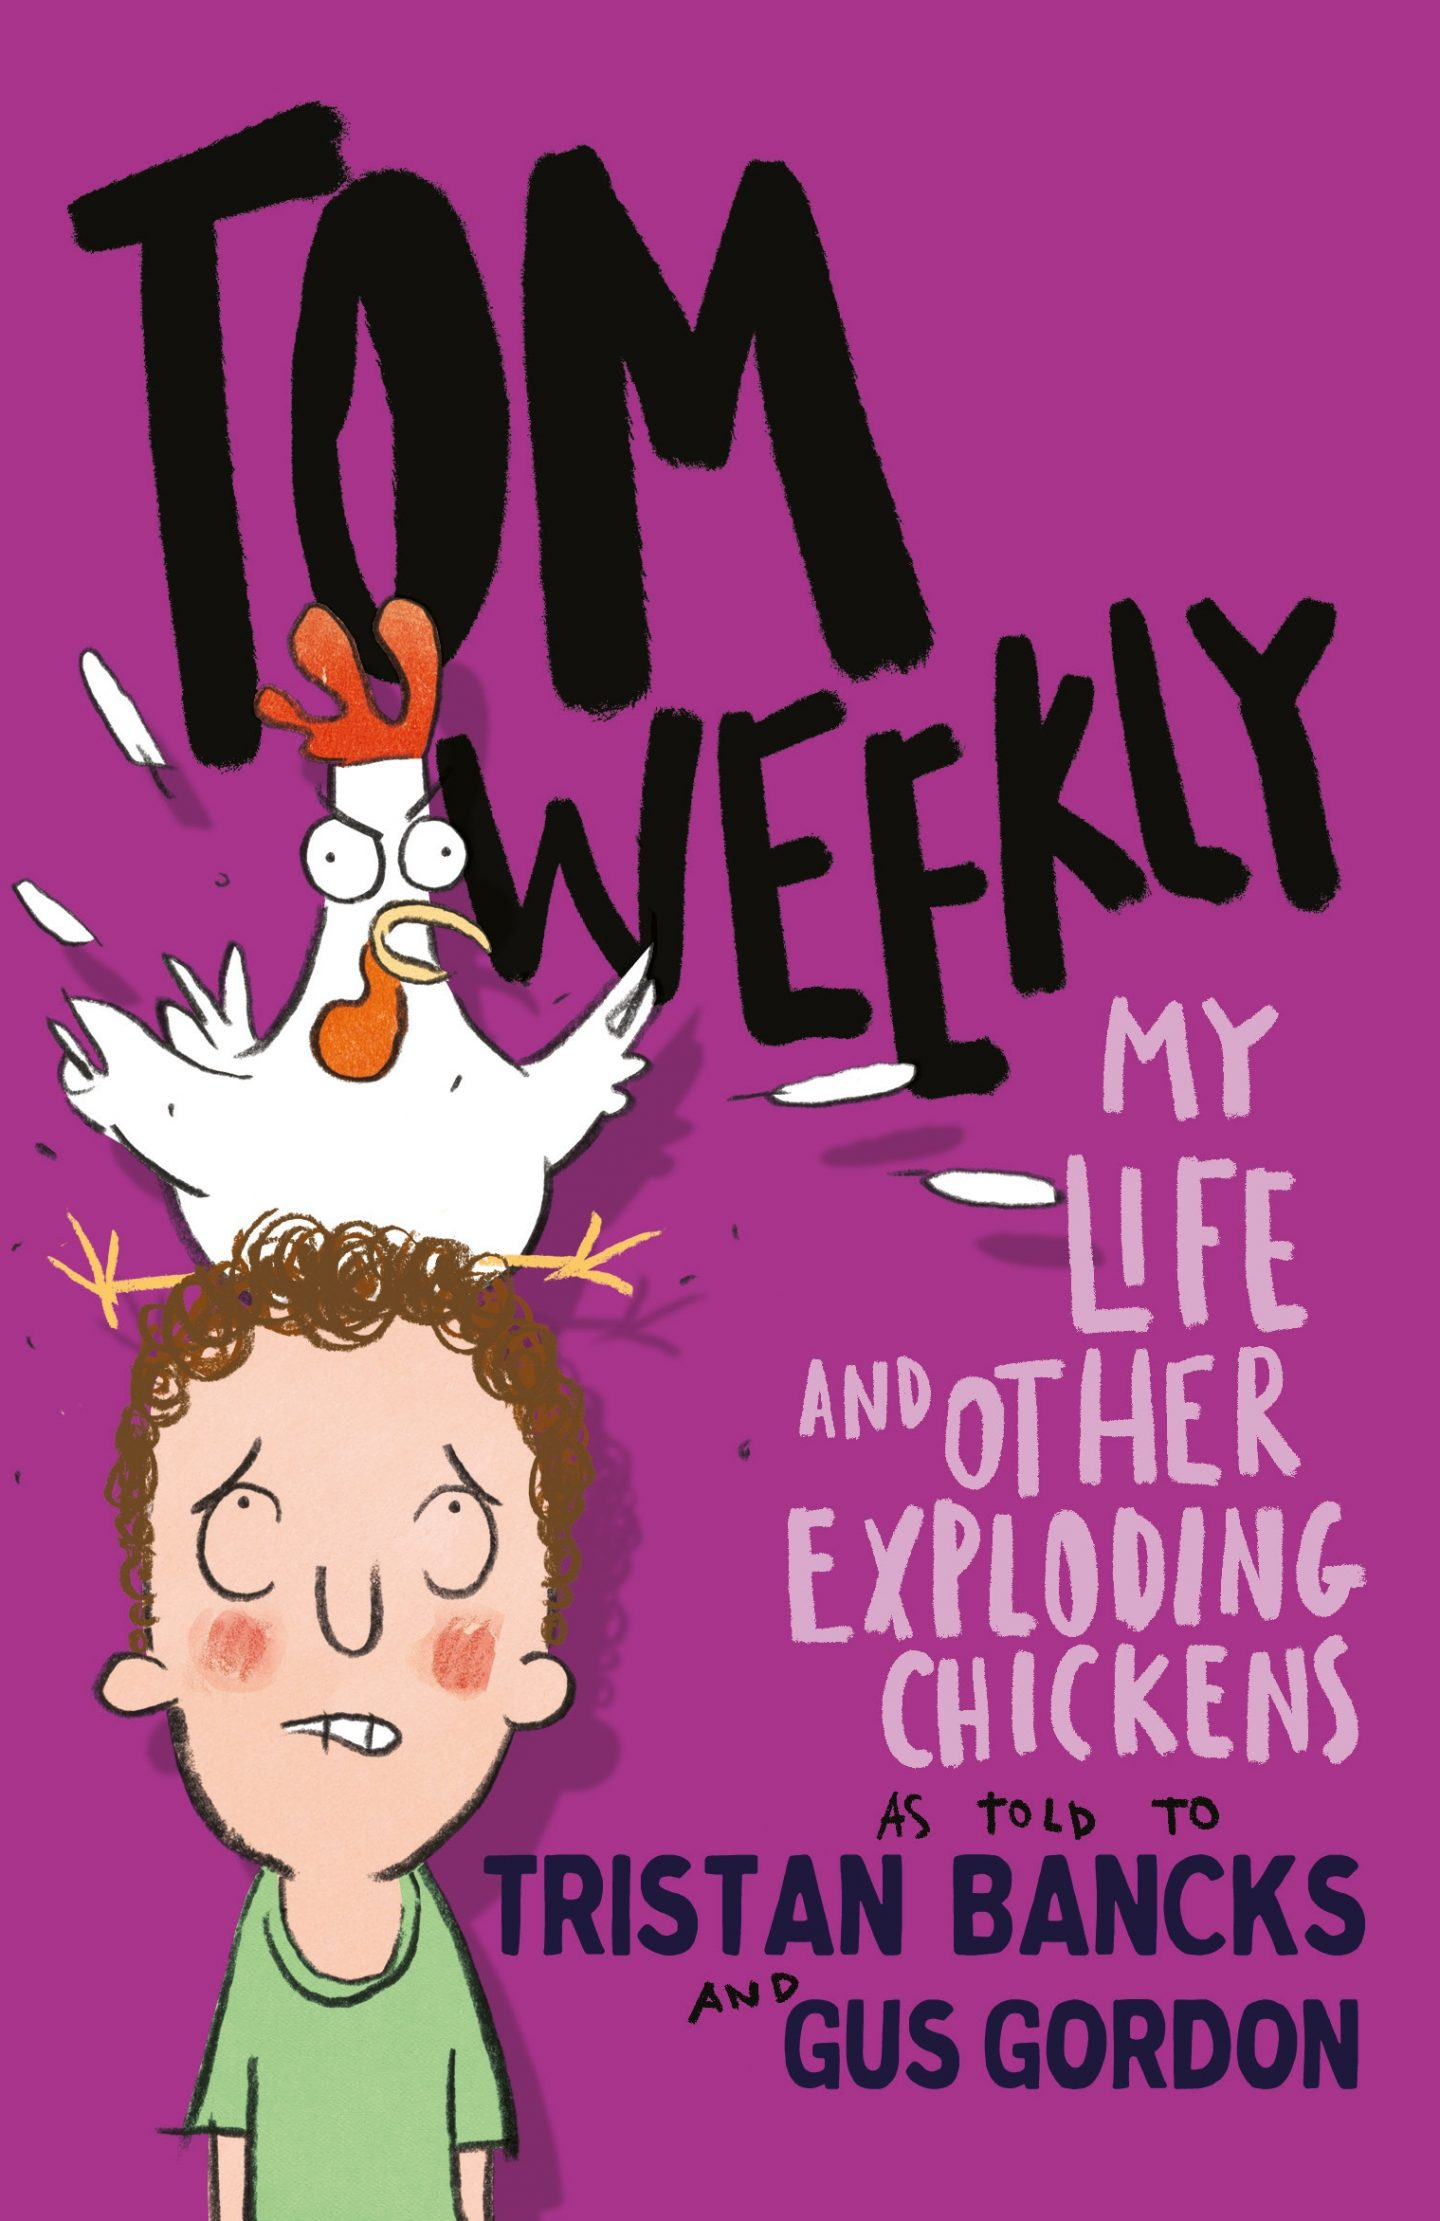 Tom Weekly My Life & Other Exploding Chickens